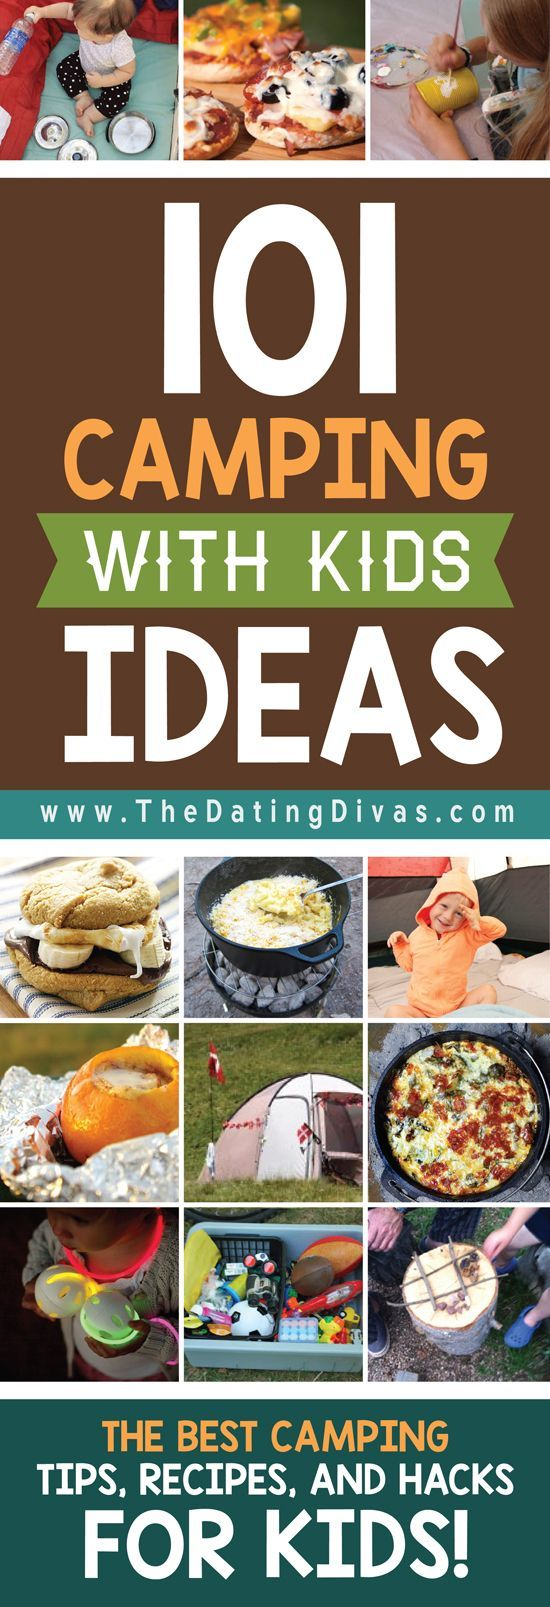 I can't wait to go camping with my family! We're going to eat like KINGS! http://www.TheDatingDivas.com